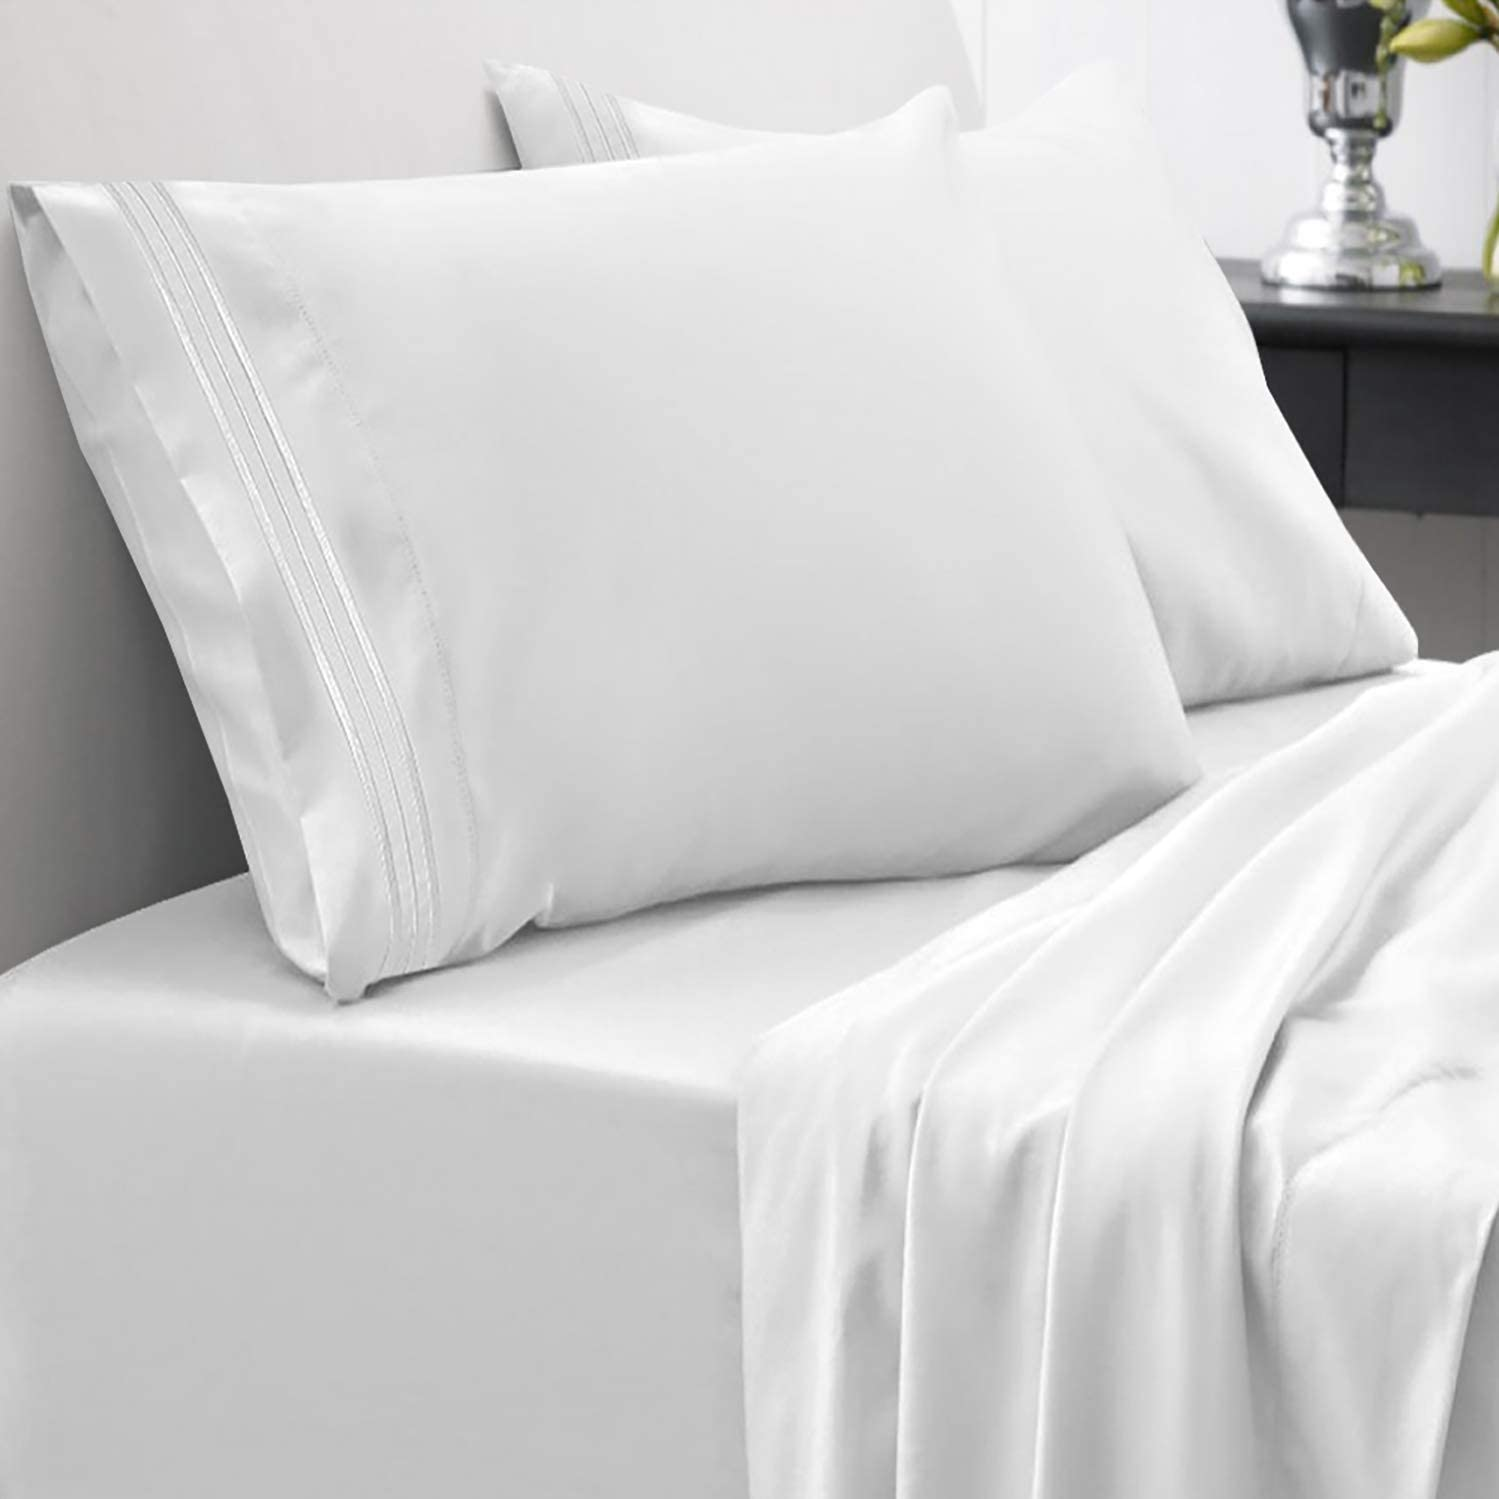 1800 Thread Count Sheet Set – Soft Egyptian Quality Brushed Microfiber Hypoallergenic Sheets – Luxury Bedding Set with Flat Sheet, Fitted Sheet, 2 Pillow Cases, King, White